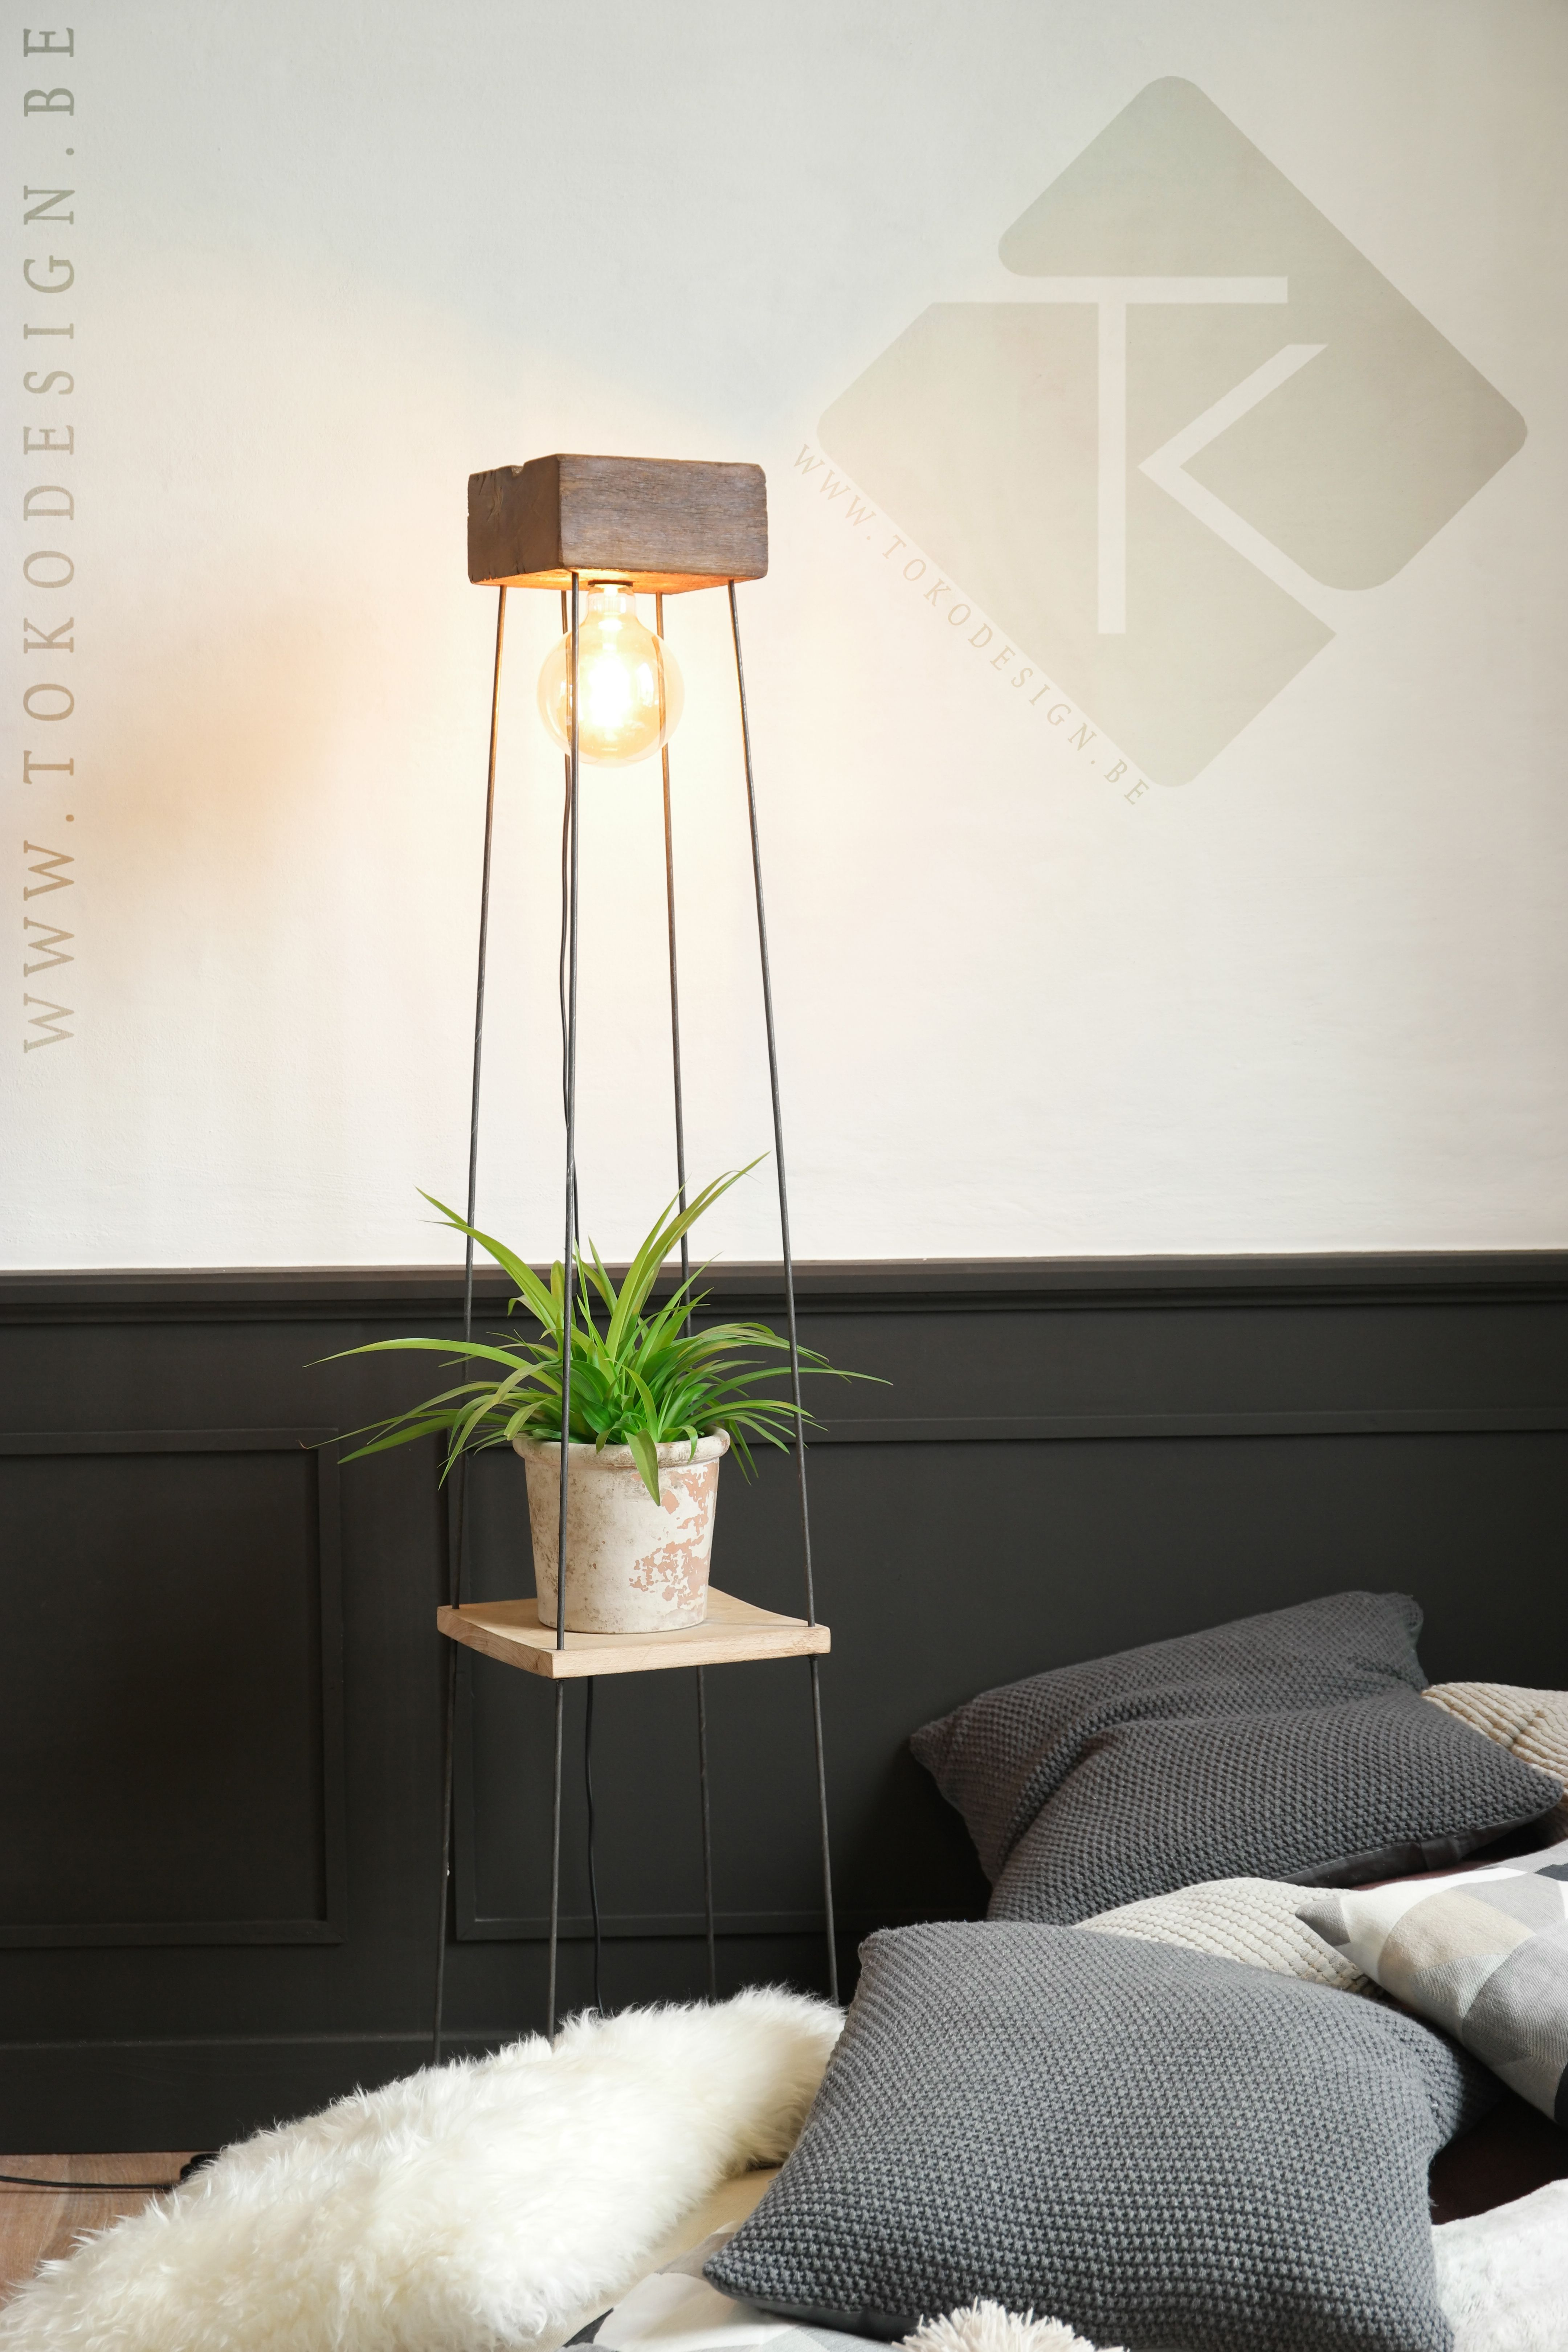 wooden lamp design lamp handmade lamp floor lamp design lighting belgium